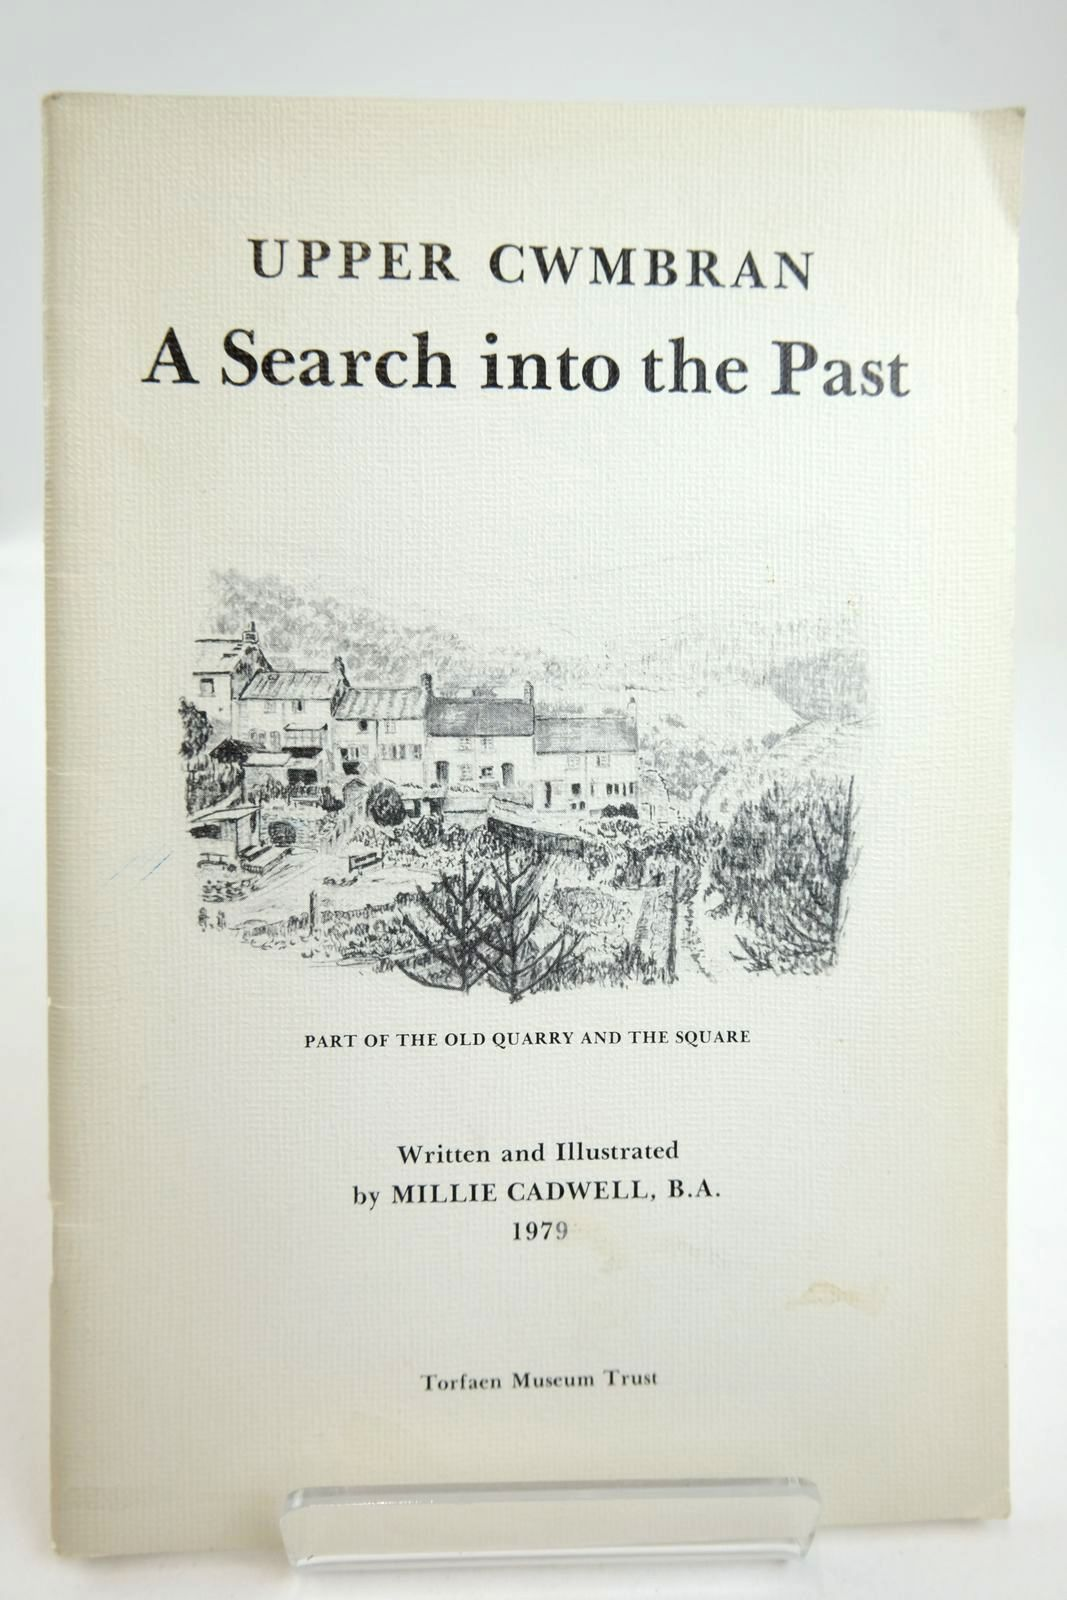 Photo of UPPER CWMBRAN A SEARCH INTO THE PAST written by Cadwell, Millie illustrated by Cadwell, Millie published by Torfaen Museum Trust (STOCK CODE: 2132886)  for sale by Stella & Rose's Books